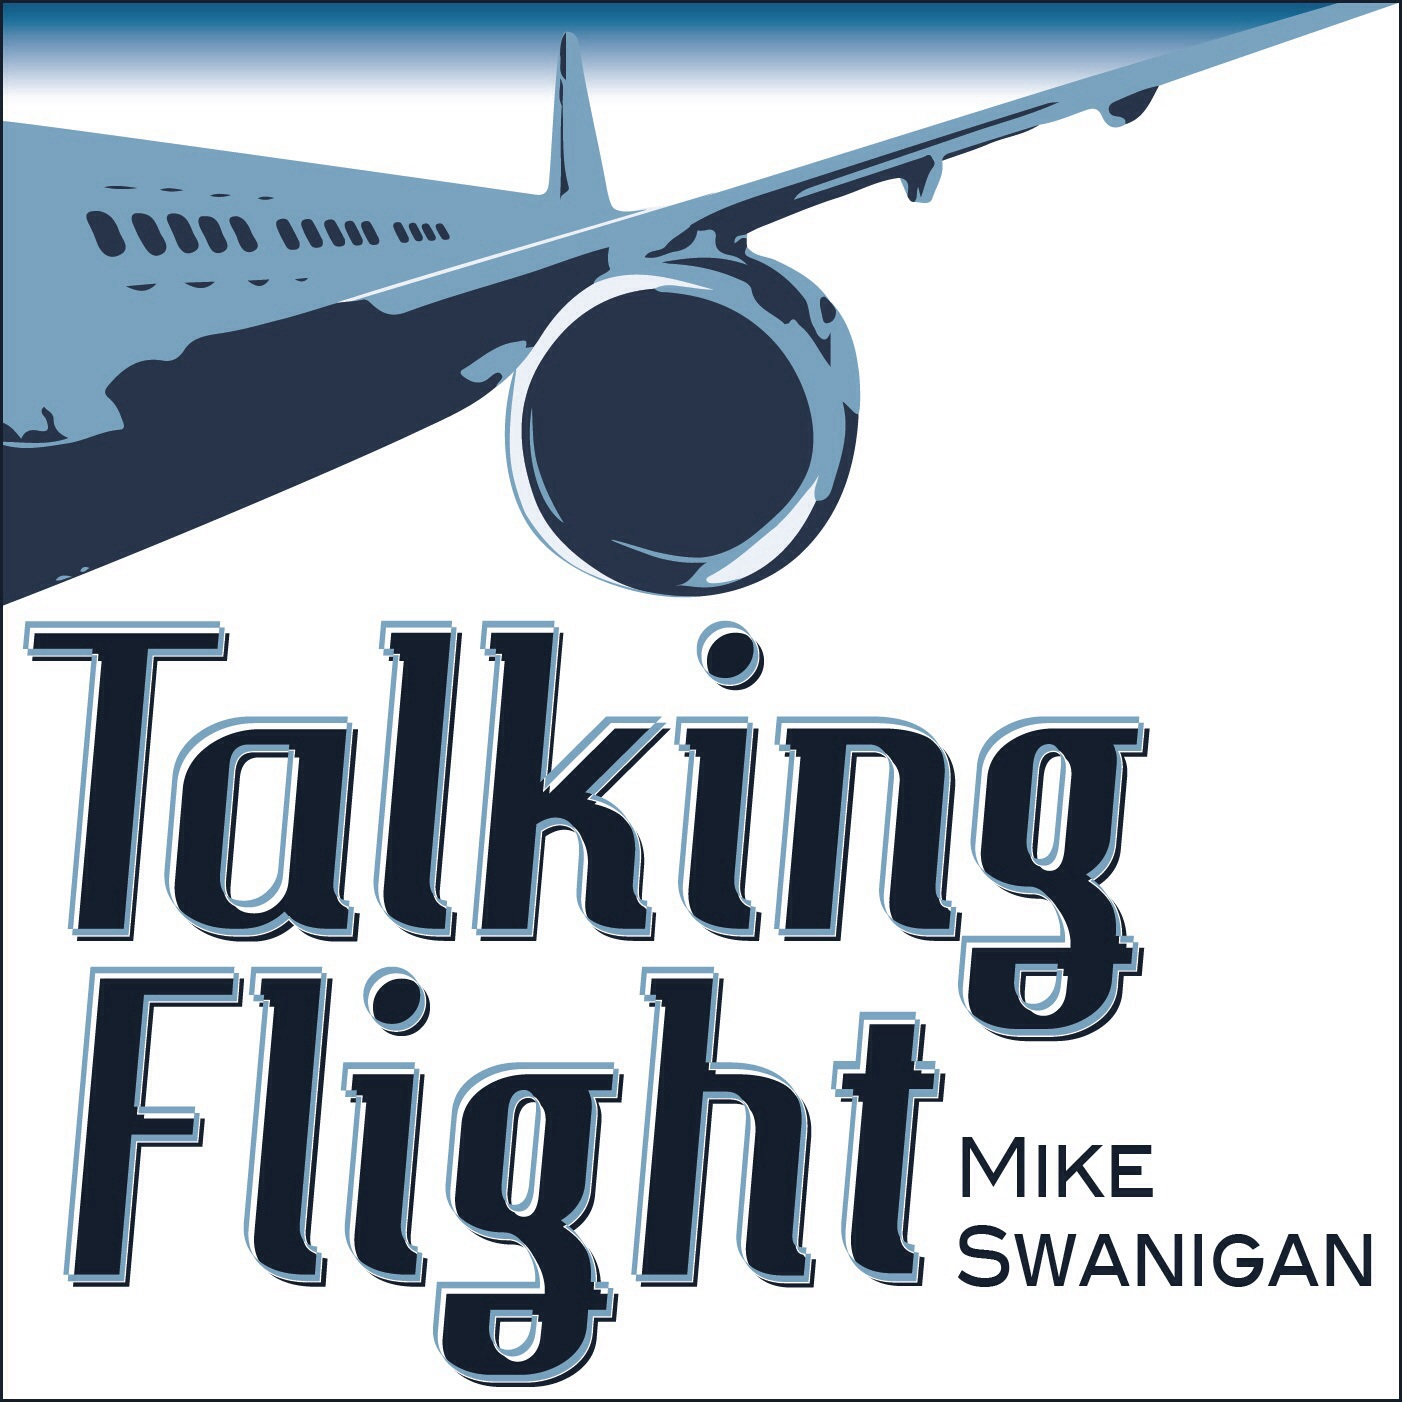 Episode 19: Alaska Airlines Captain Carlos Zendejas,